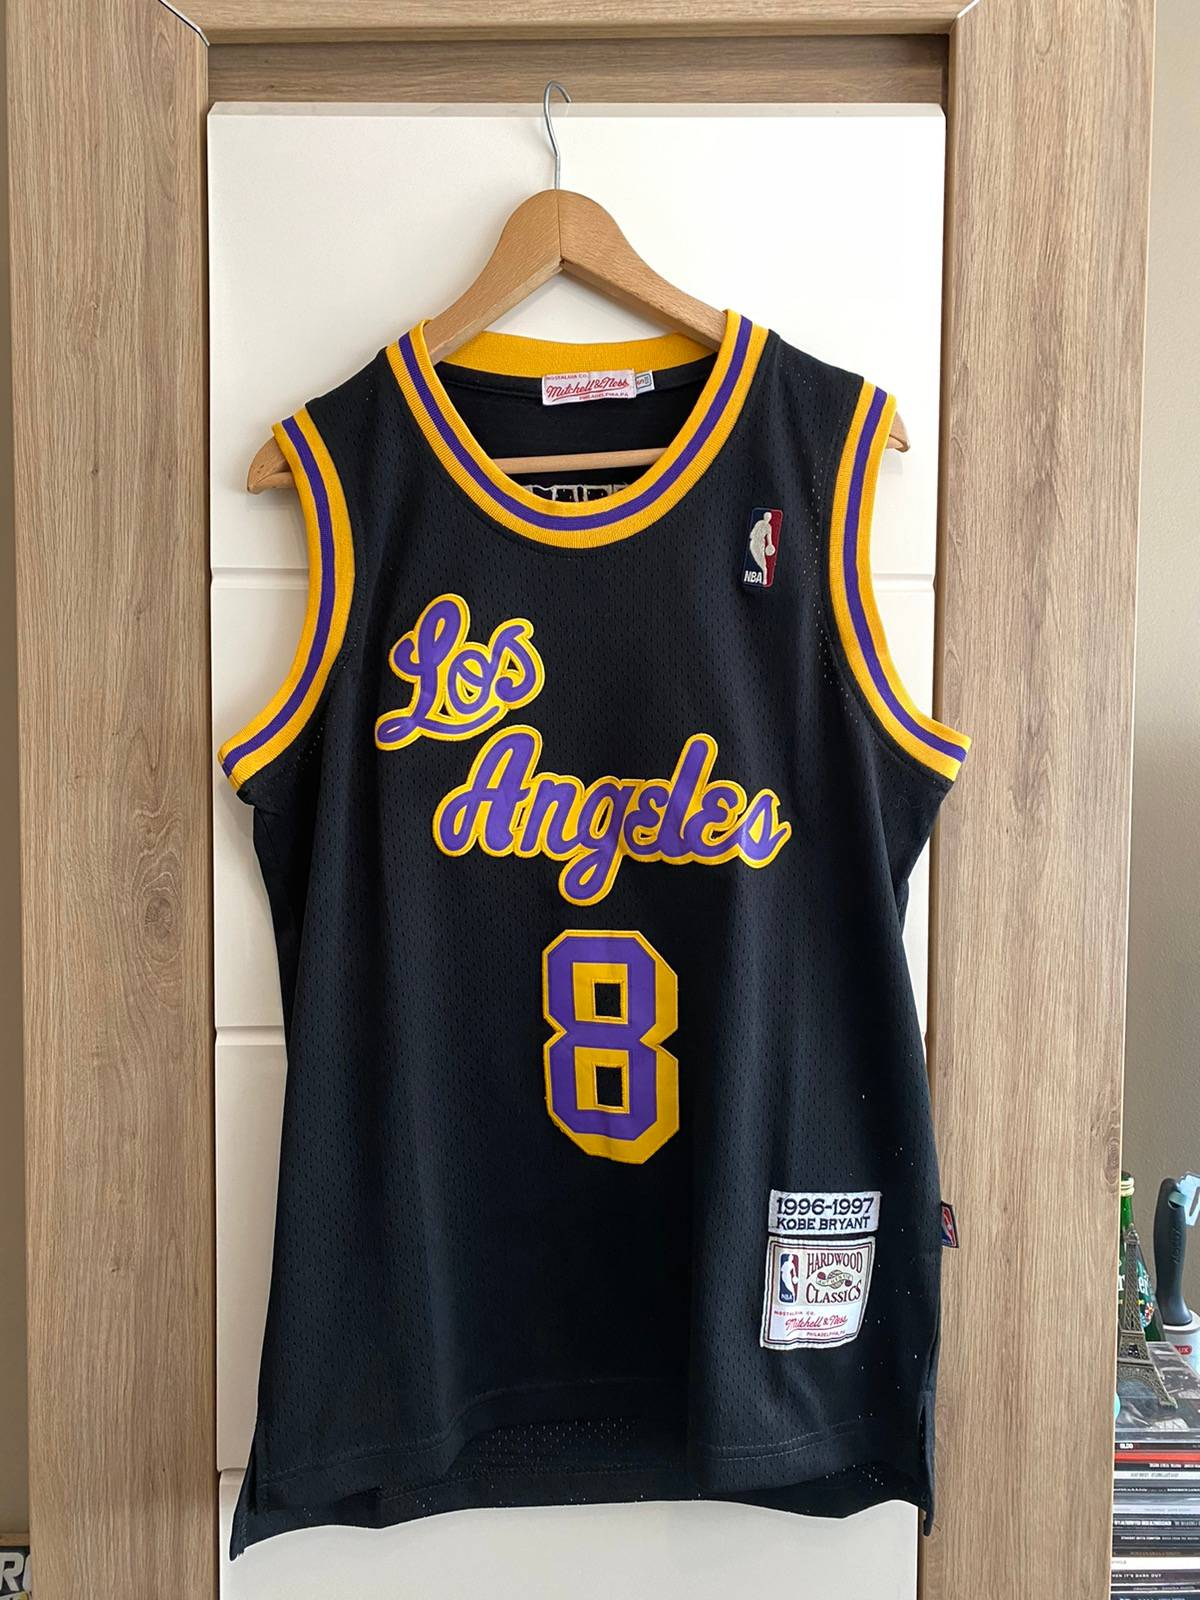 Mitchell & Ness kobe bryant 1996-97 authentic jersey los angeles lakers